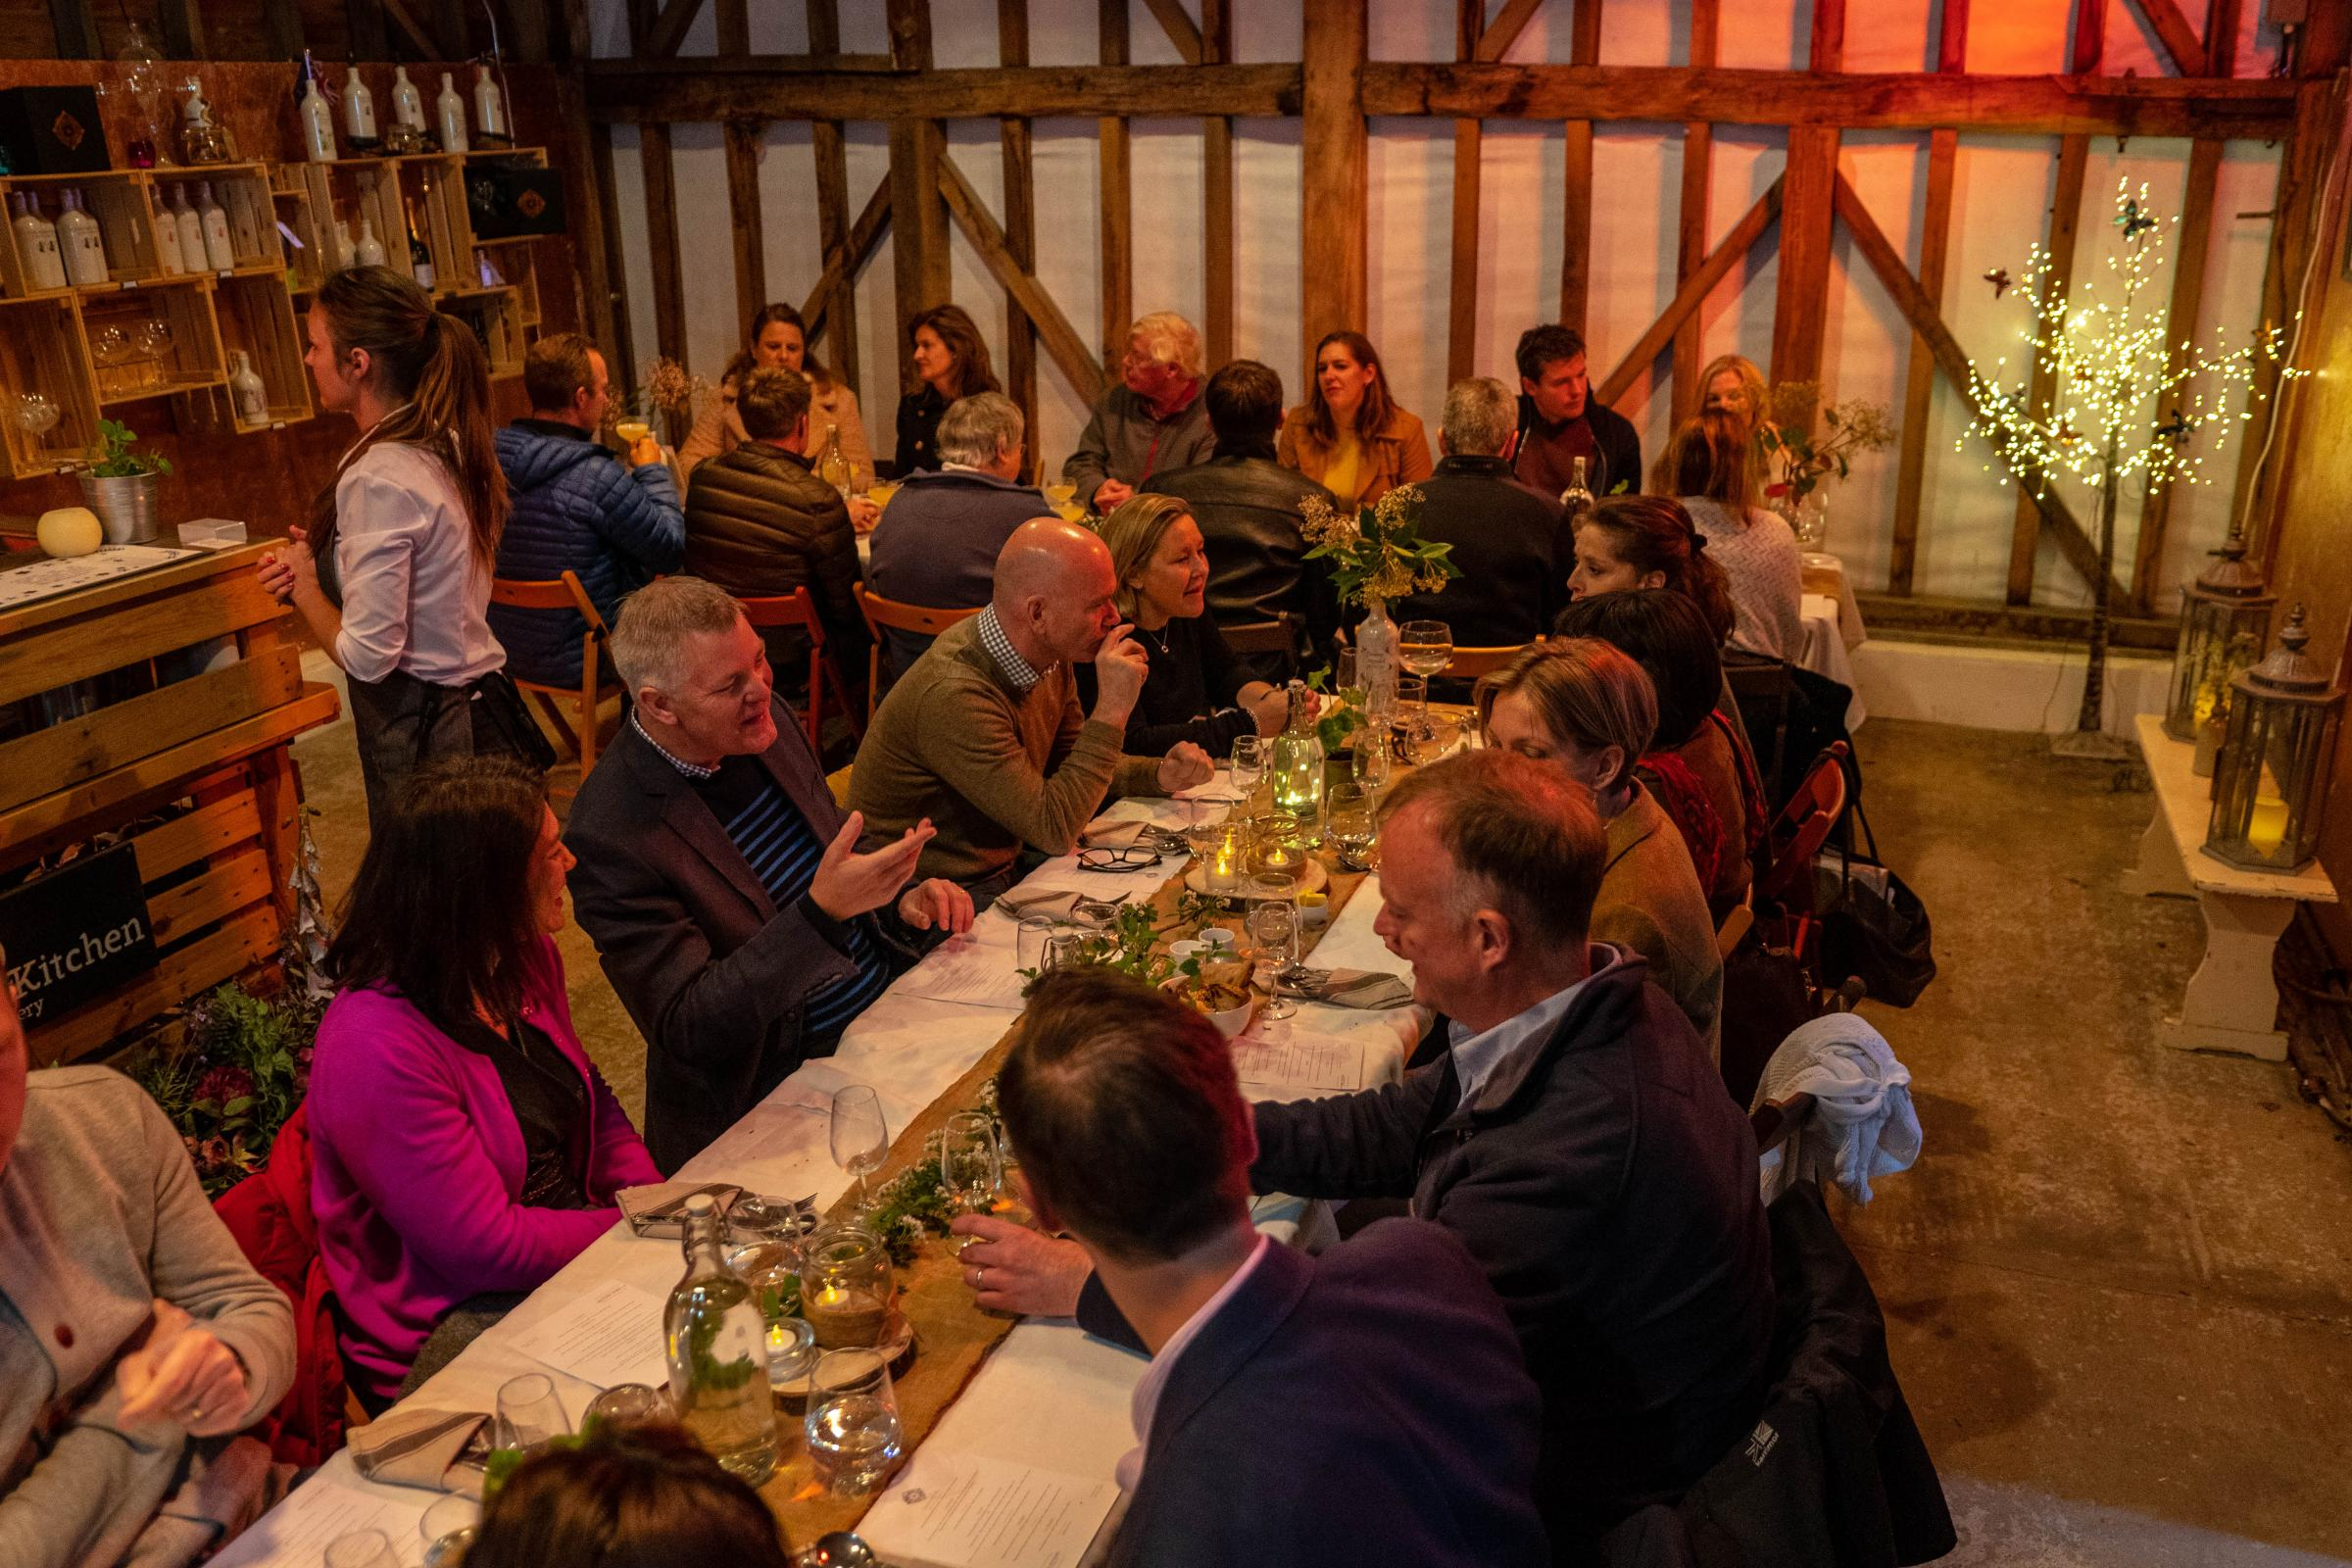 Winter Supper at The Gin Kitchen